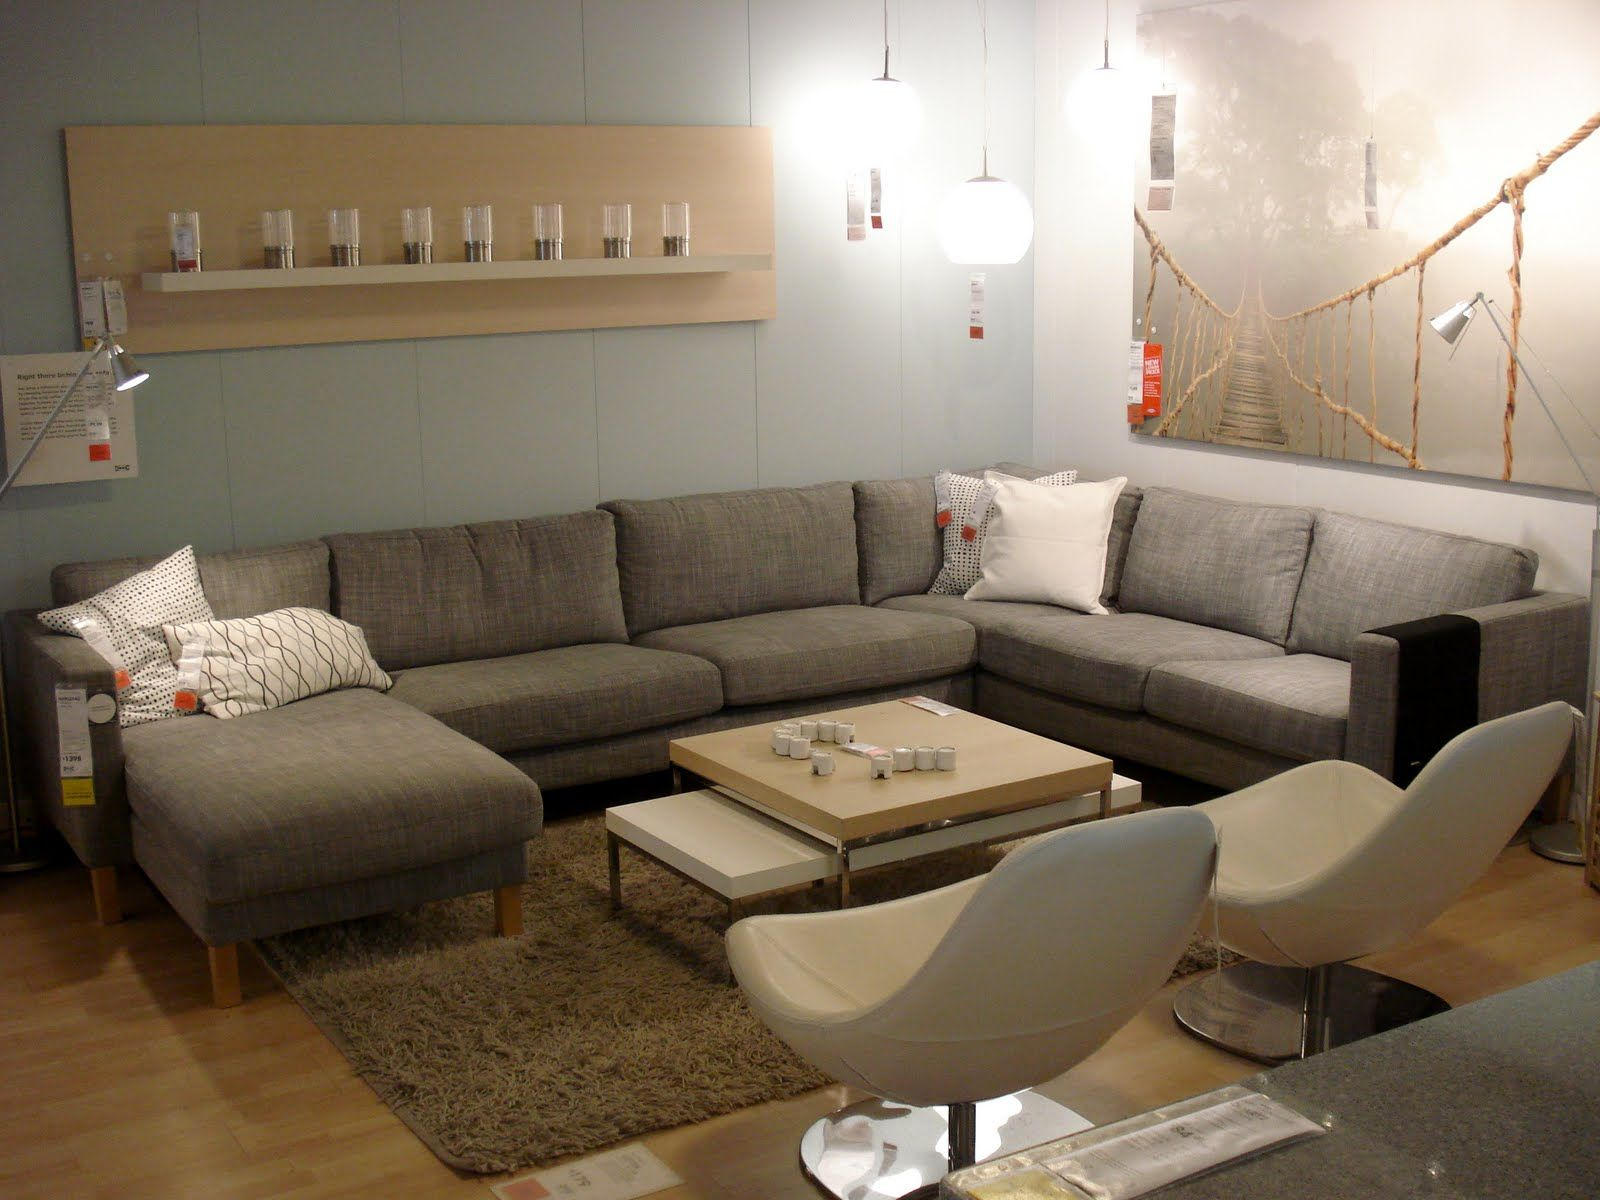 Ikea Karlstad Corner Sofa Leather So I Checked Out The Options And Found Here S A